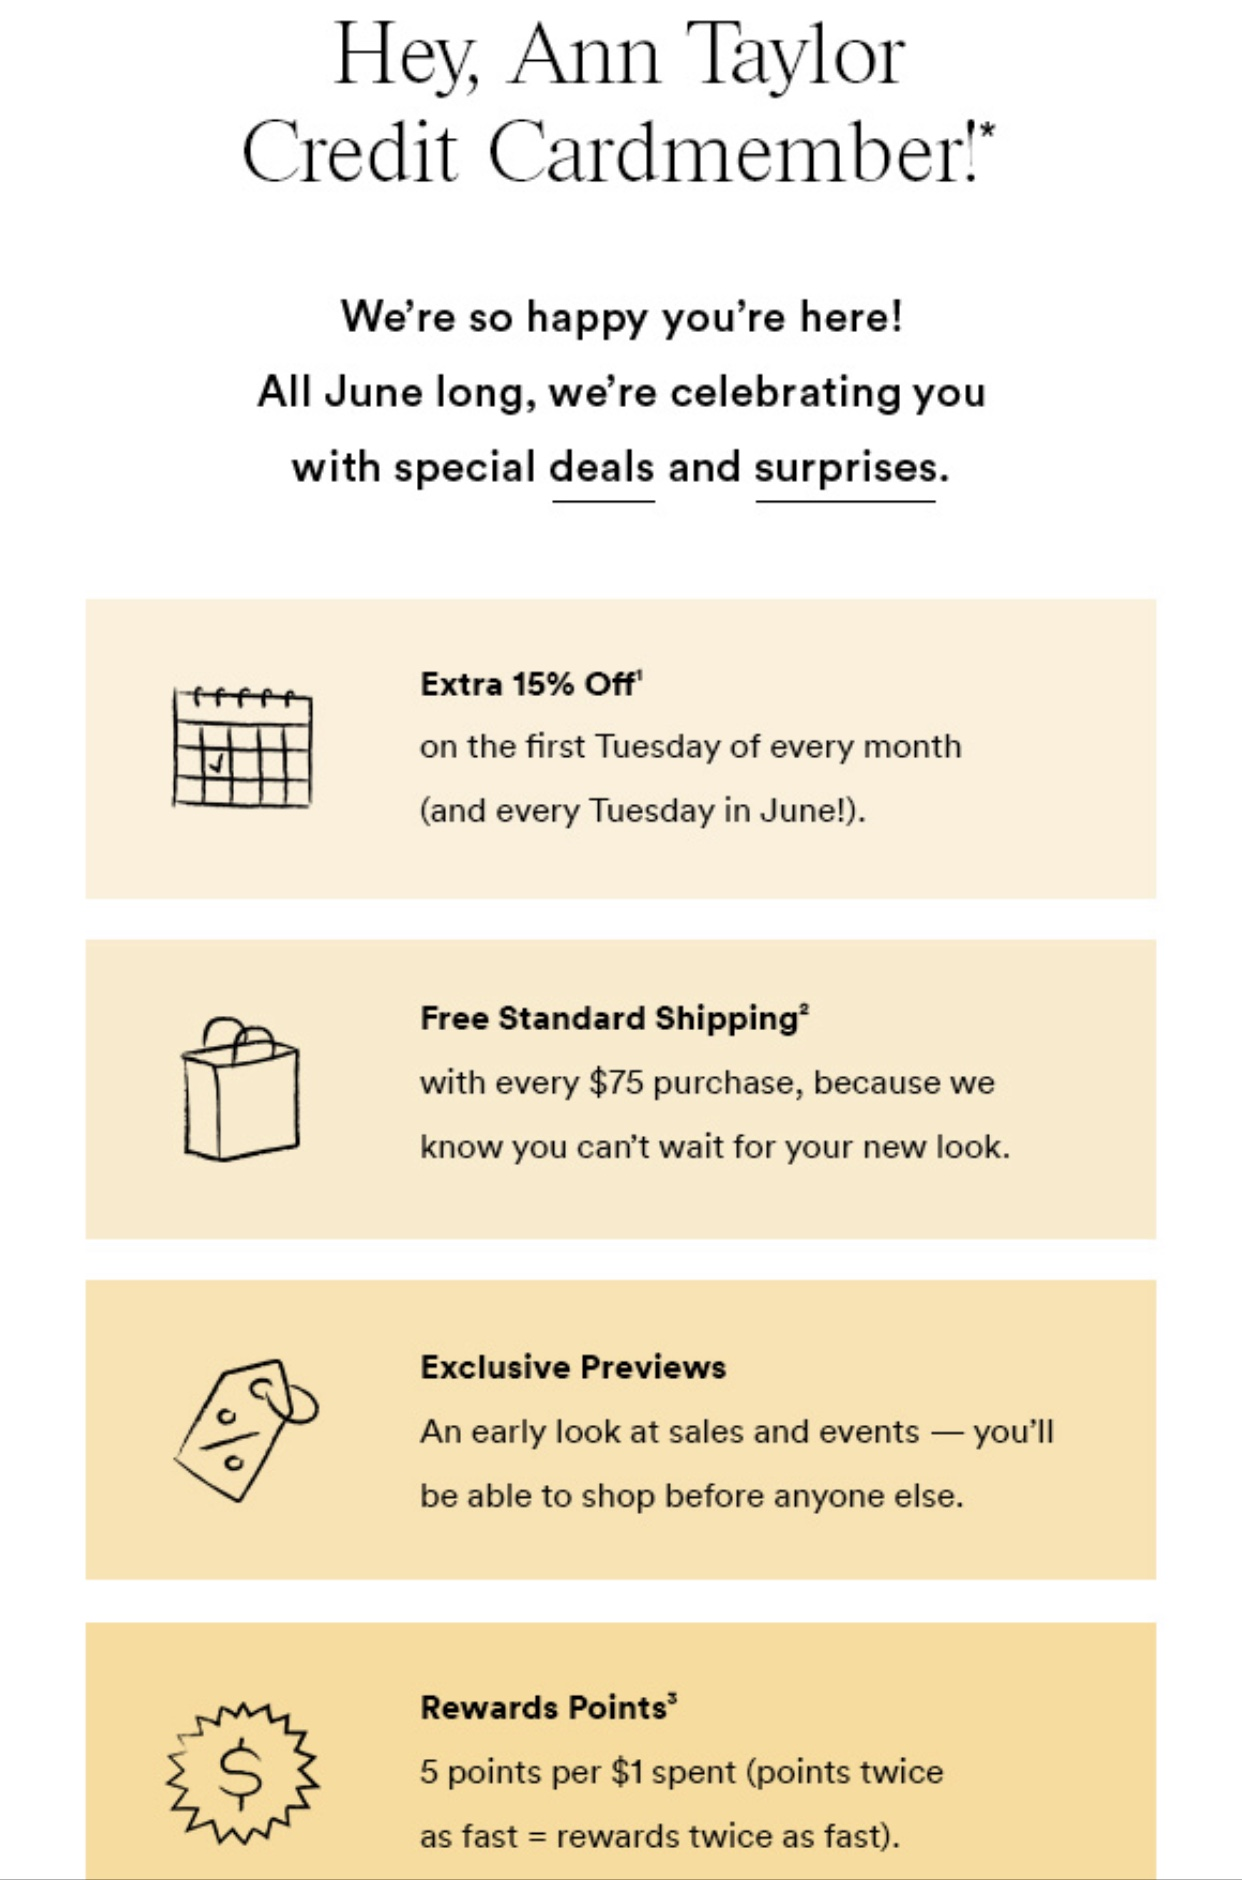 June is Credit Cardmember appreciation month